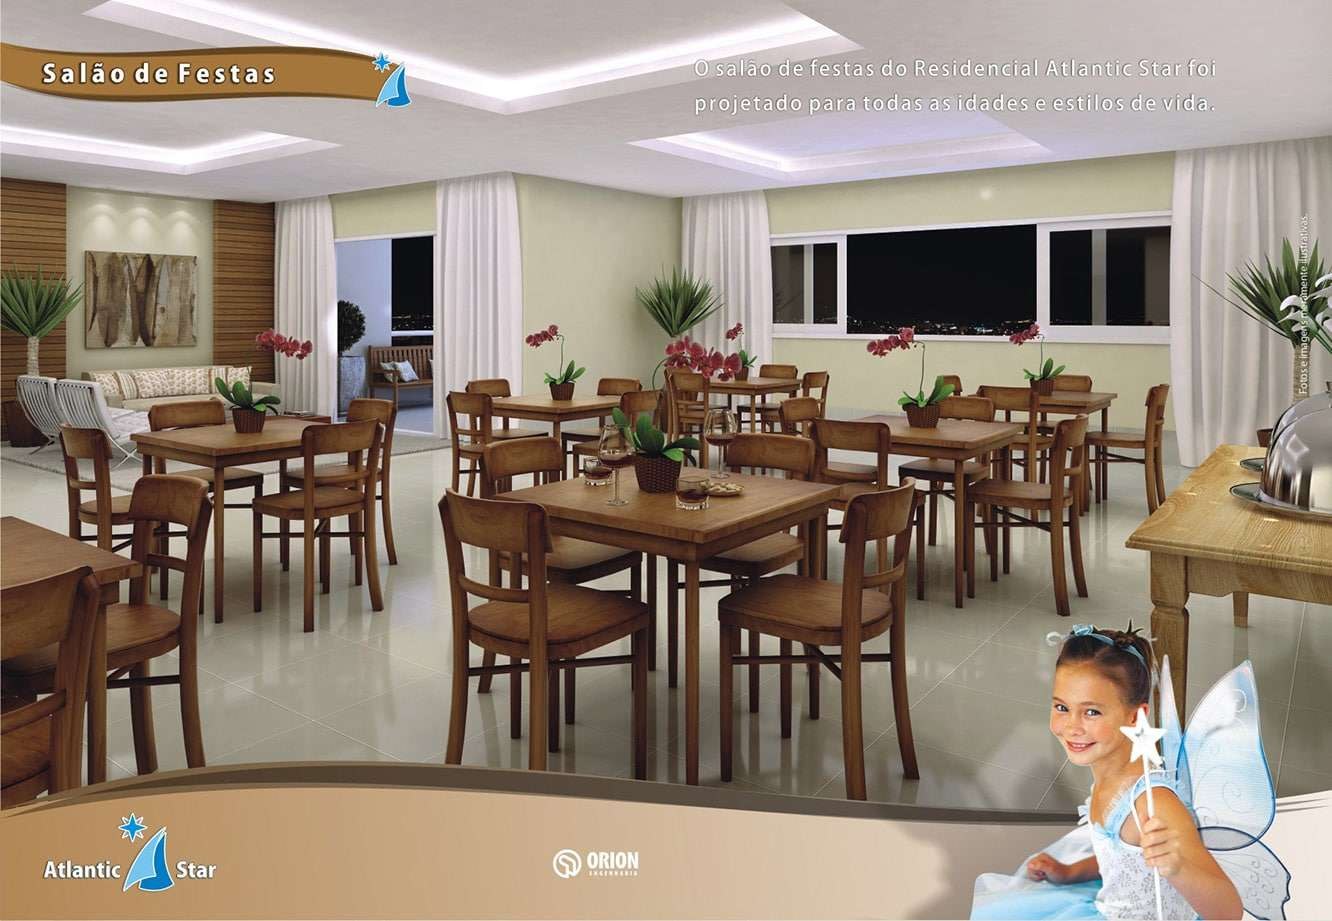 Residencial Atlantic Star   Revista Pagina14 15